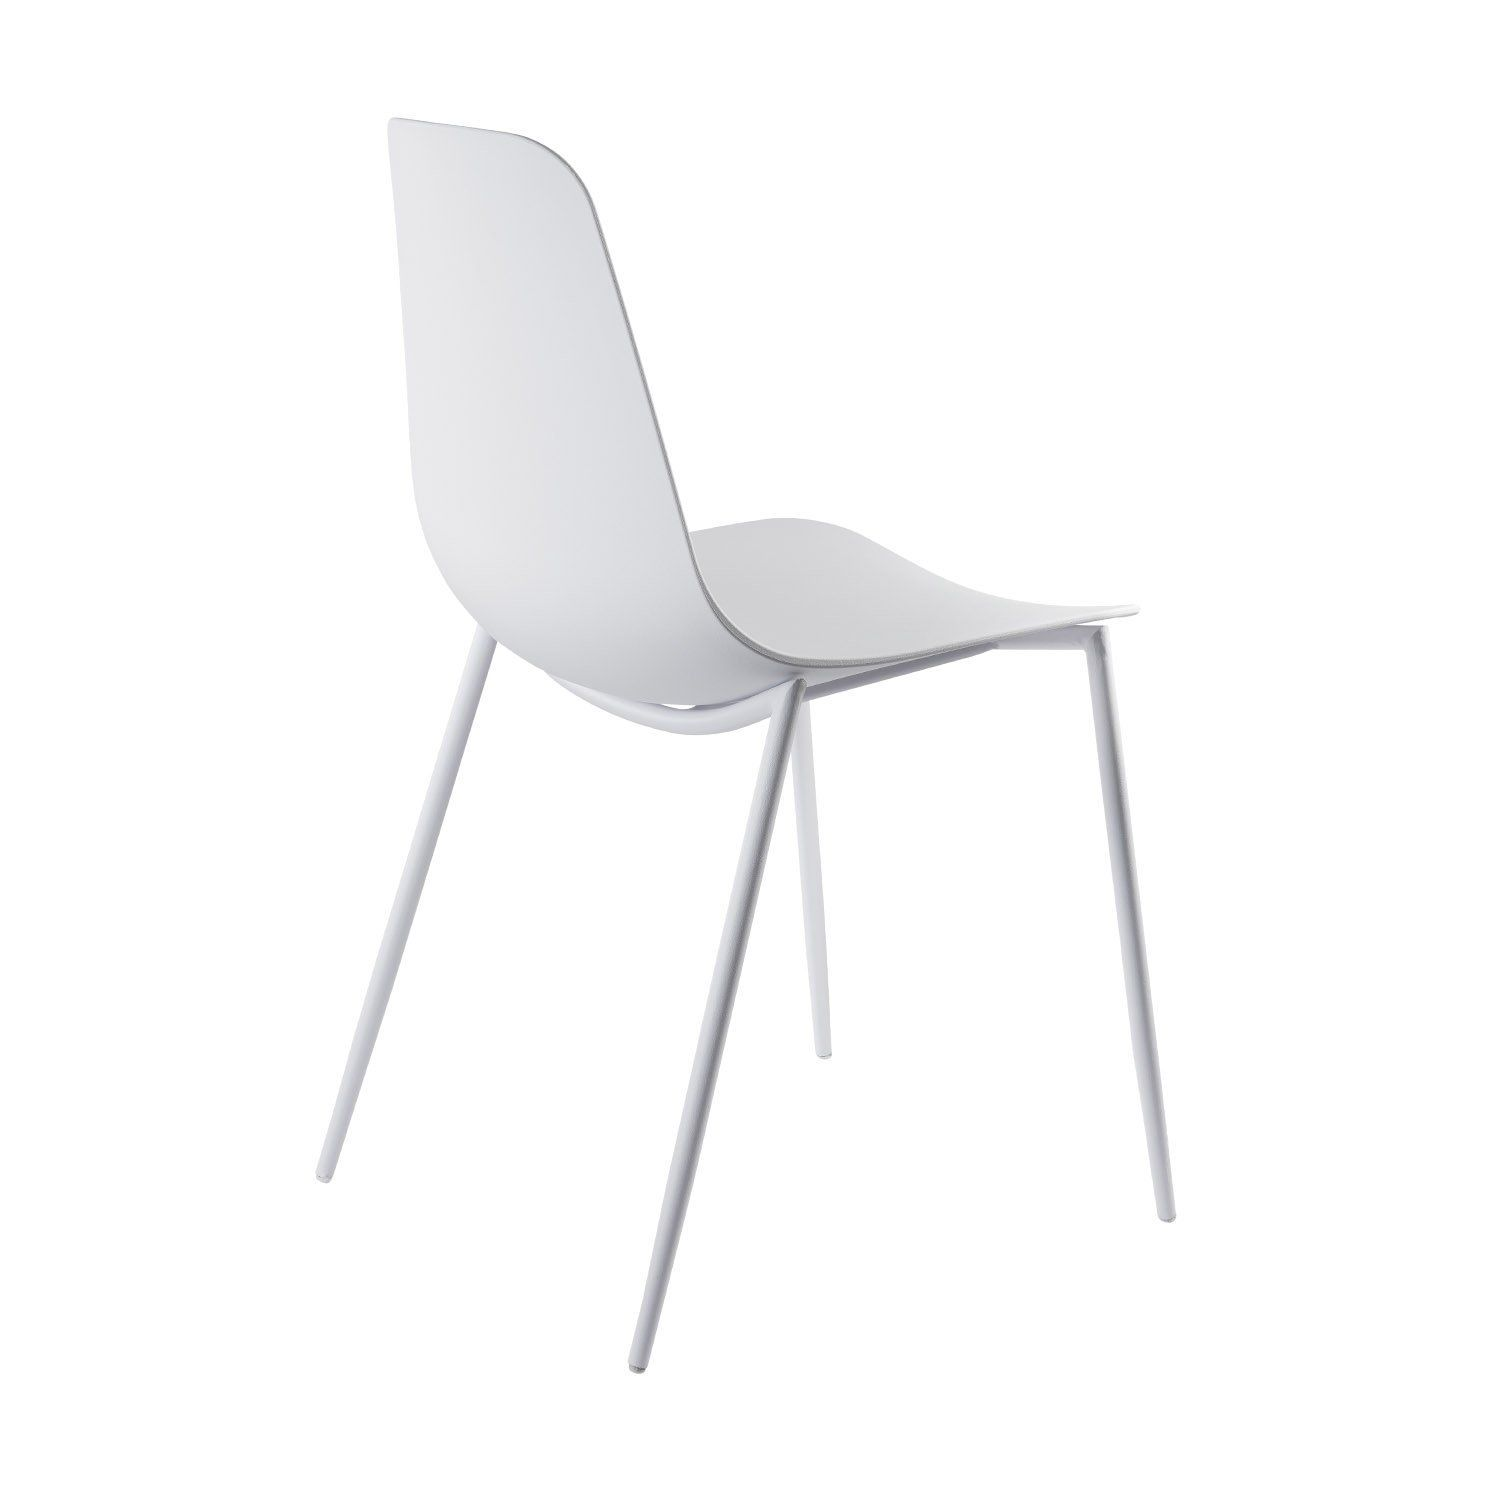 concept furniture modern patio boise ideas chair house of plastic and chairs awesome white